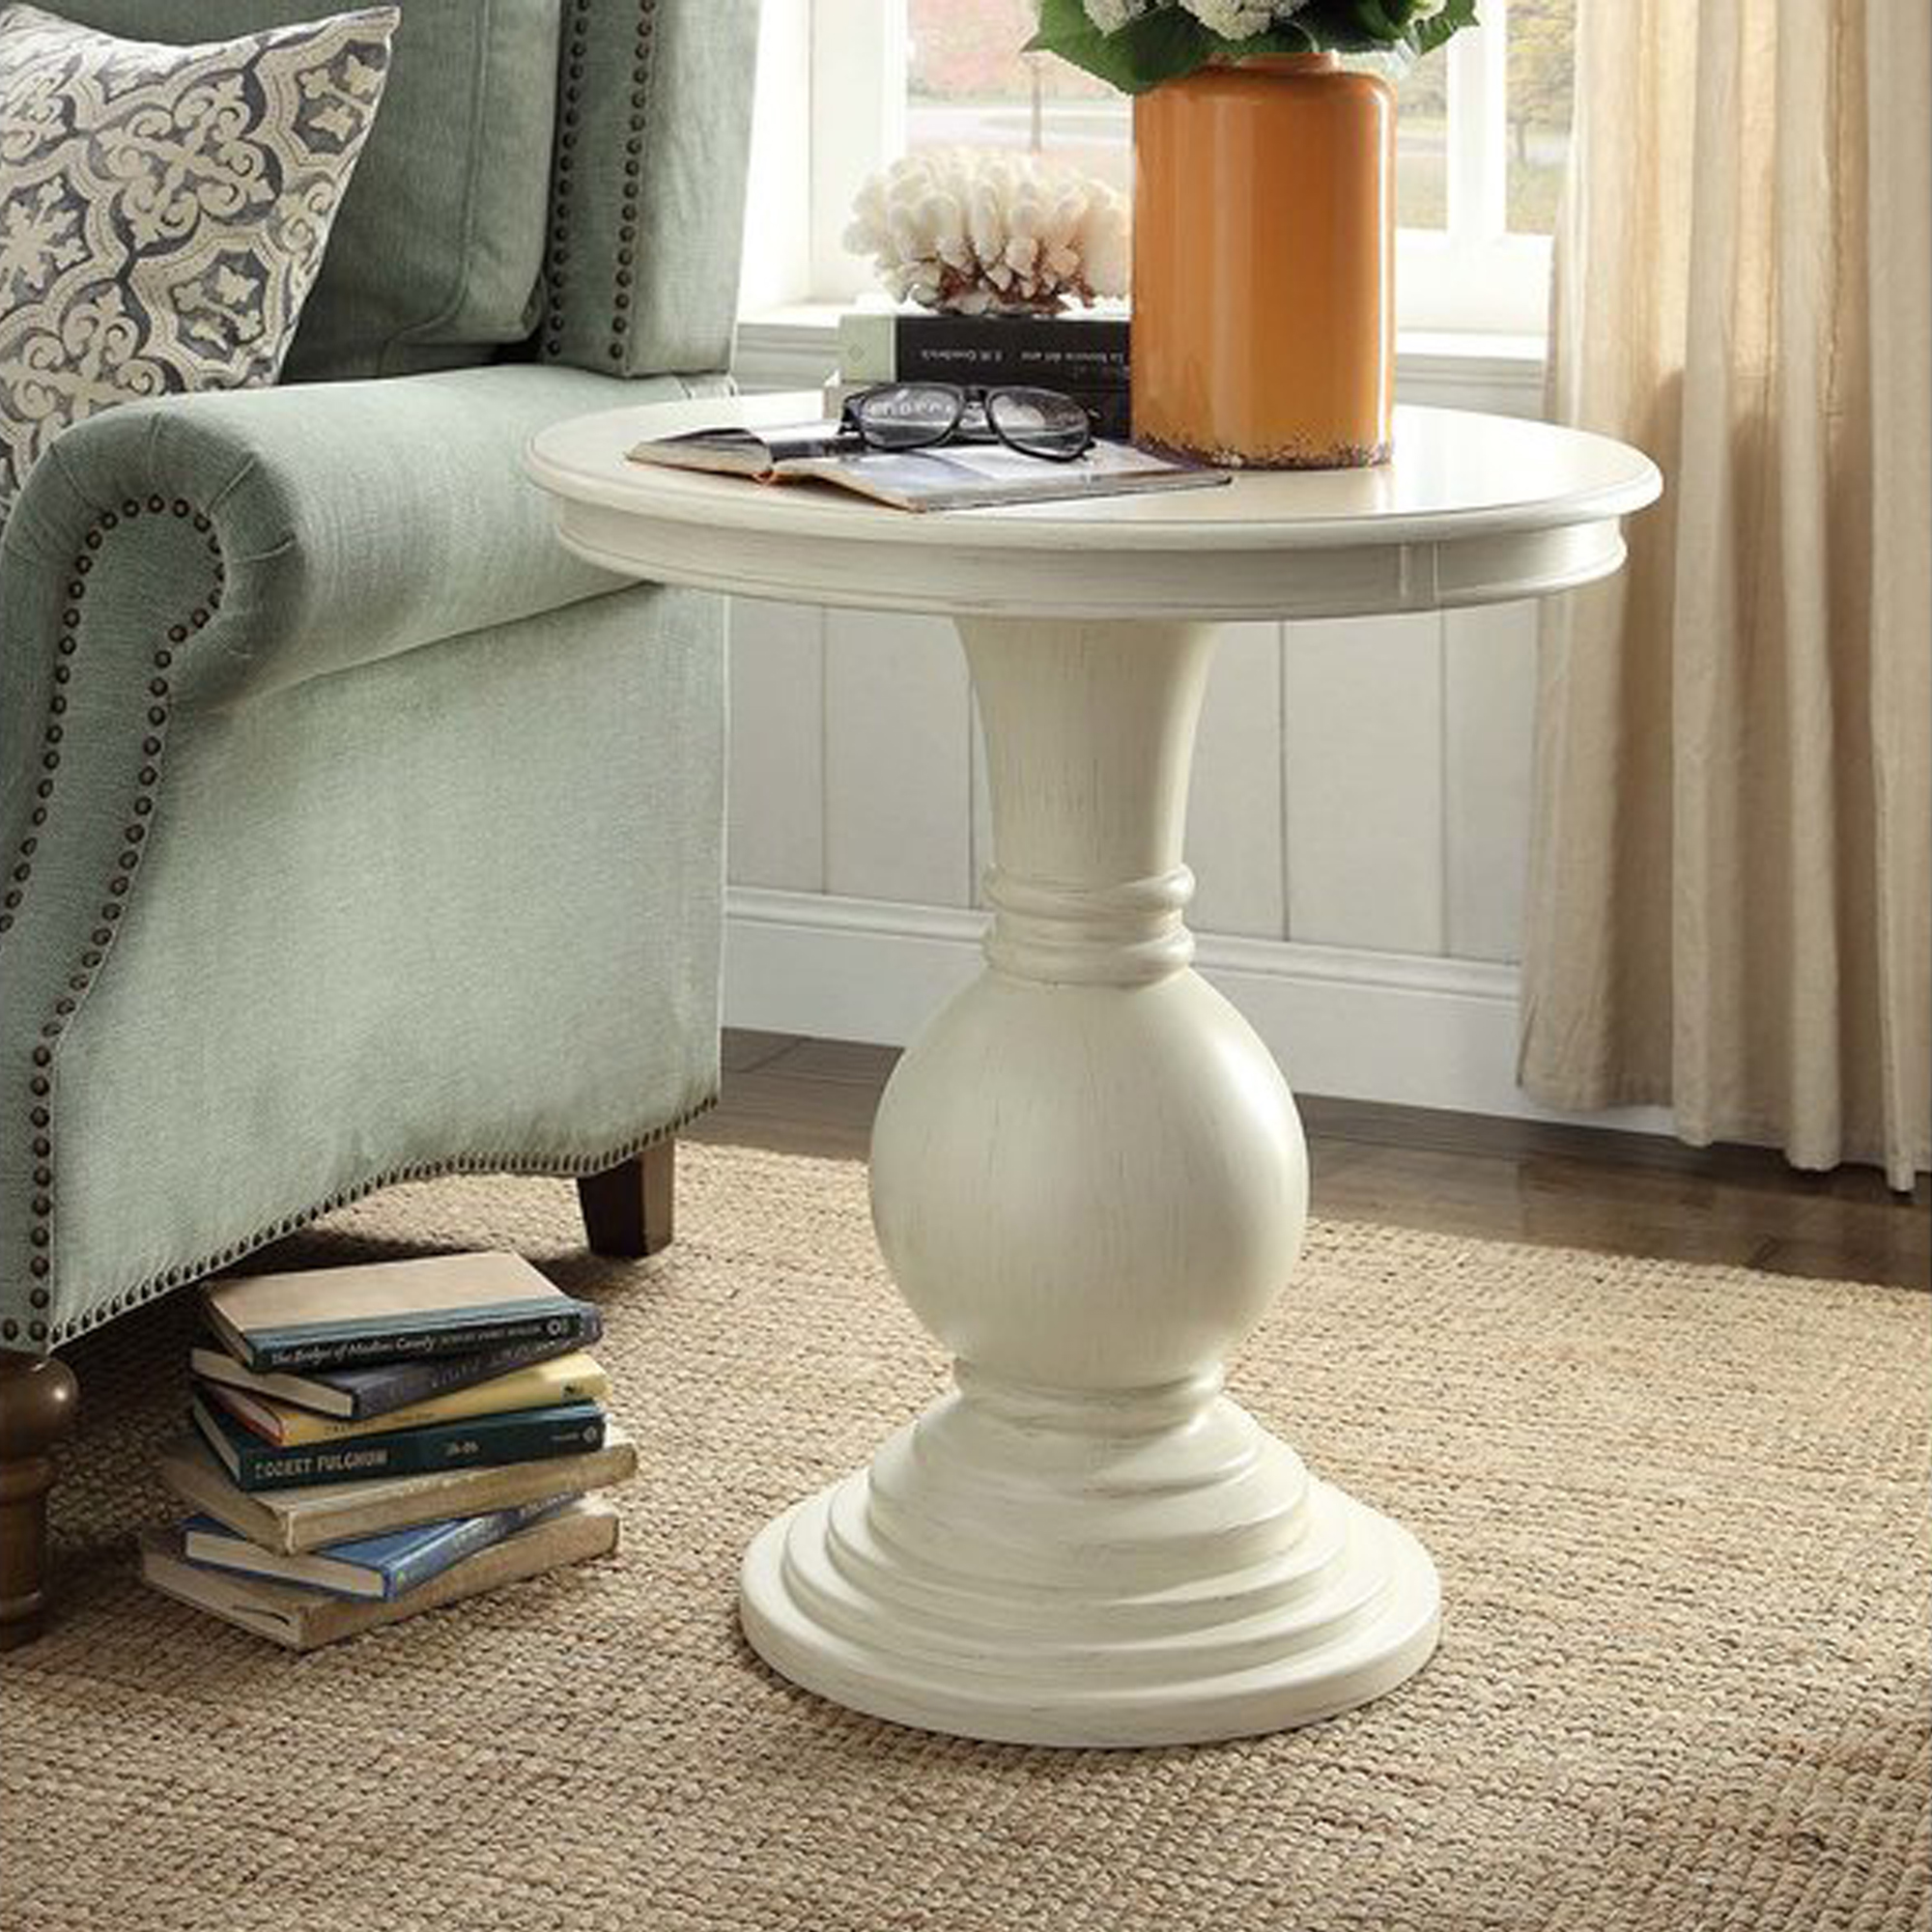 tall pedestal accent table design ideas round end tables side lamp for wrought iron small black distressed off white best accentuate your living dining room furniture sets glass